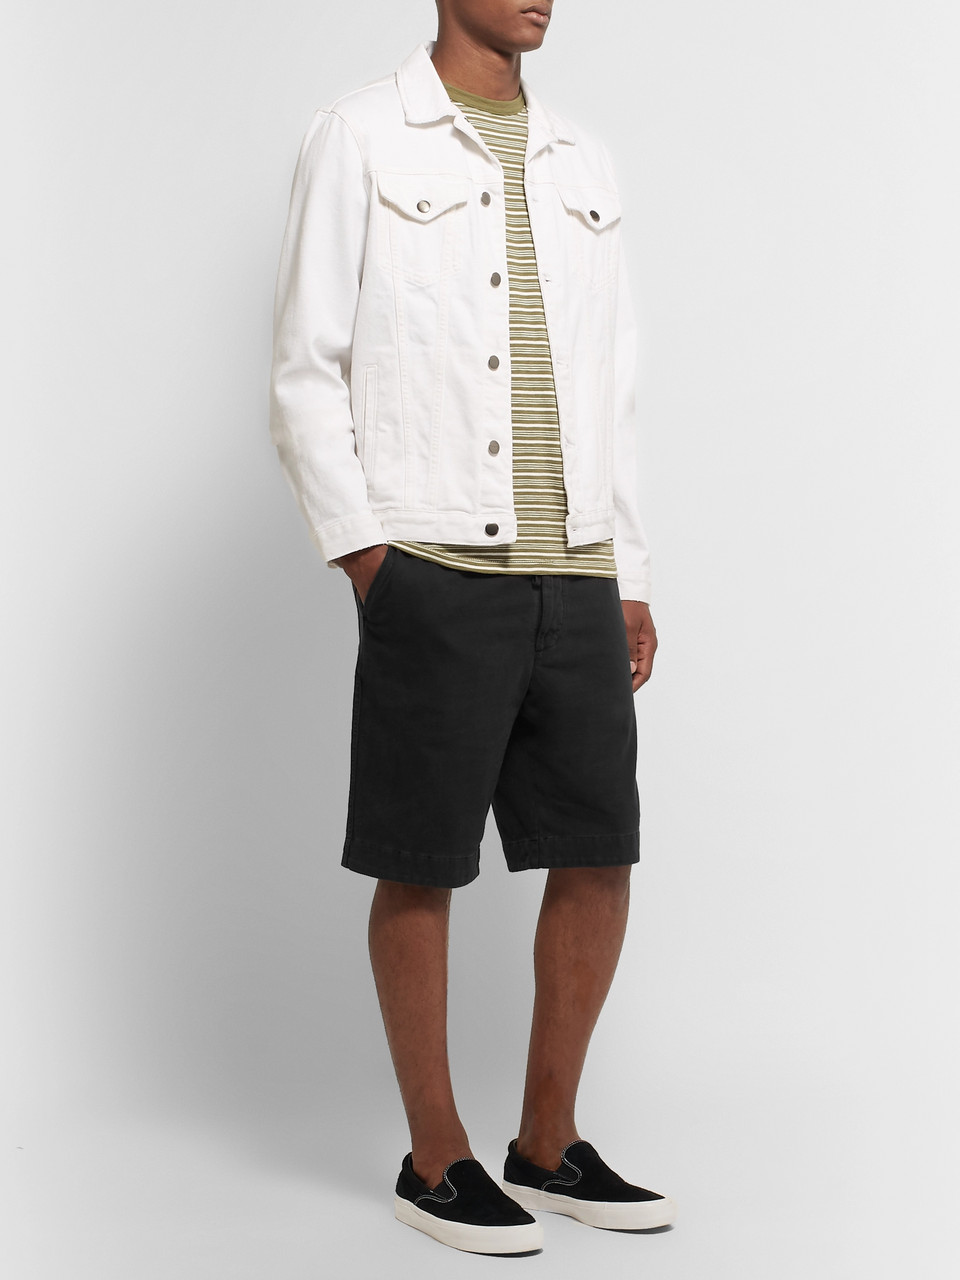 James Perse Slim-Fit Cotton-Jersey Shorts